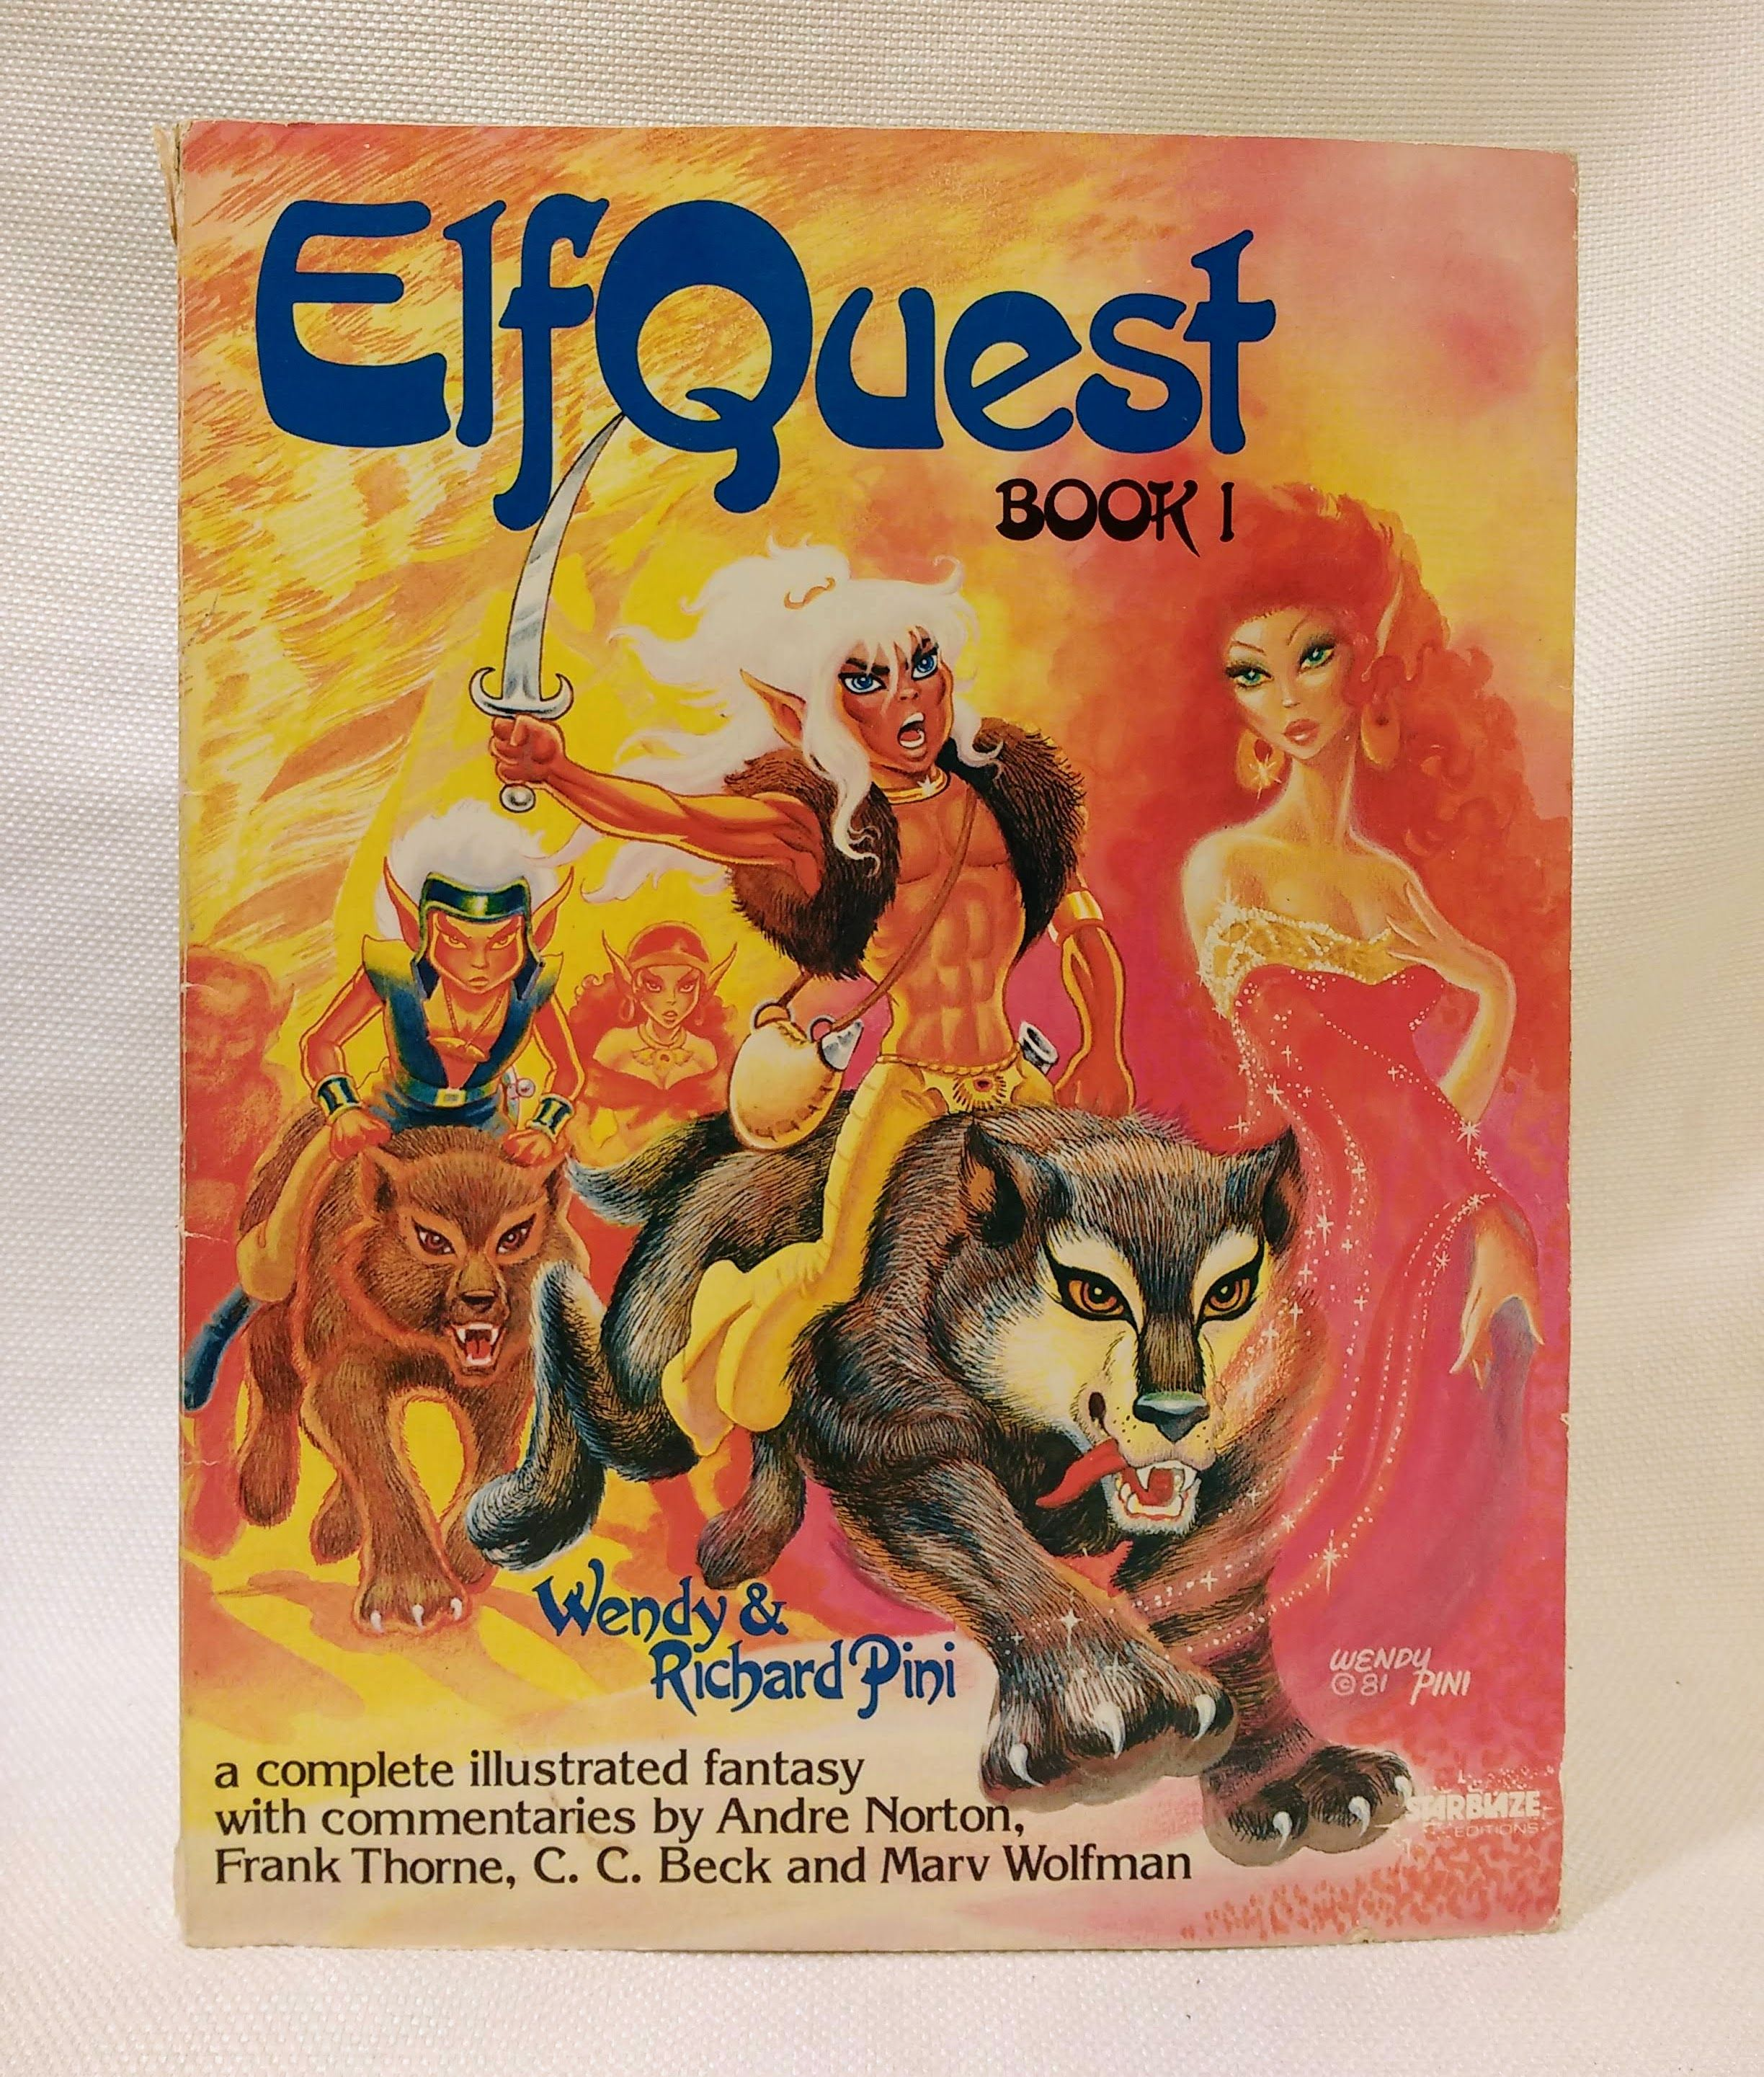 ElfQuest, Book 1, Wendy Pini; Richard Pini; Andre Norton [Foreword]; Frank Thorne [Foreword]; C. C. Beck [Foreword]; Marv Wolfman [Foreword];